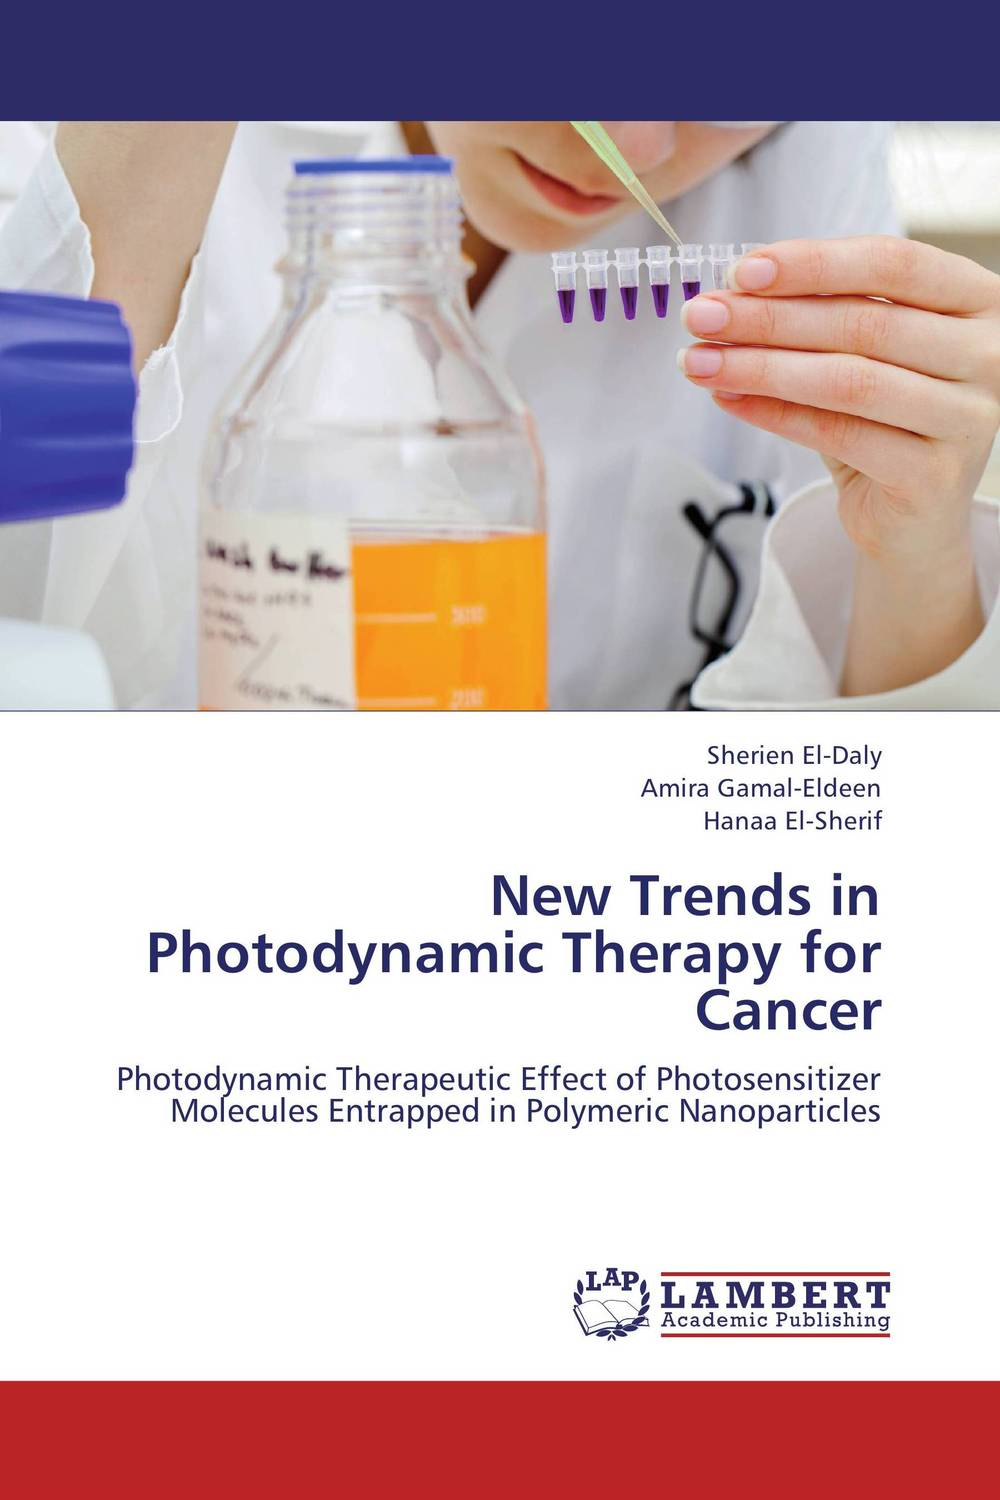 New Trends in Photodynamic Therapy for Cancer viruses cell transformation and cancer 5